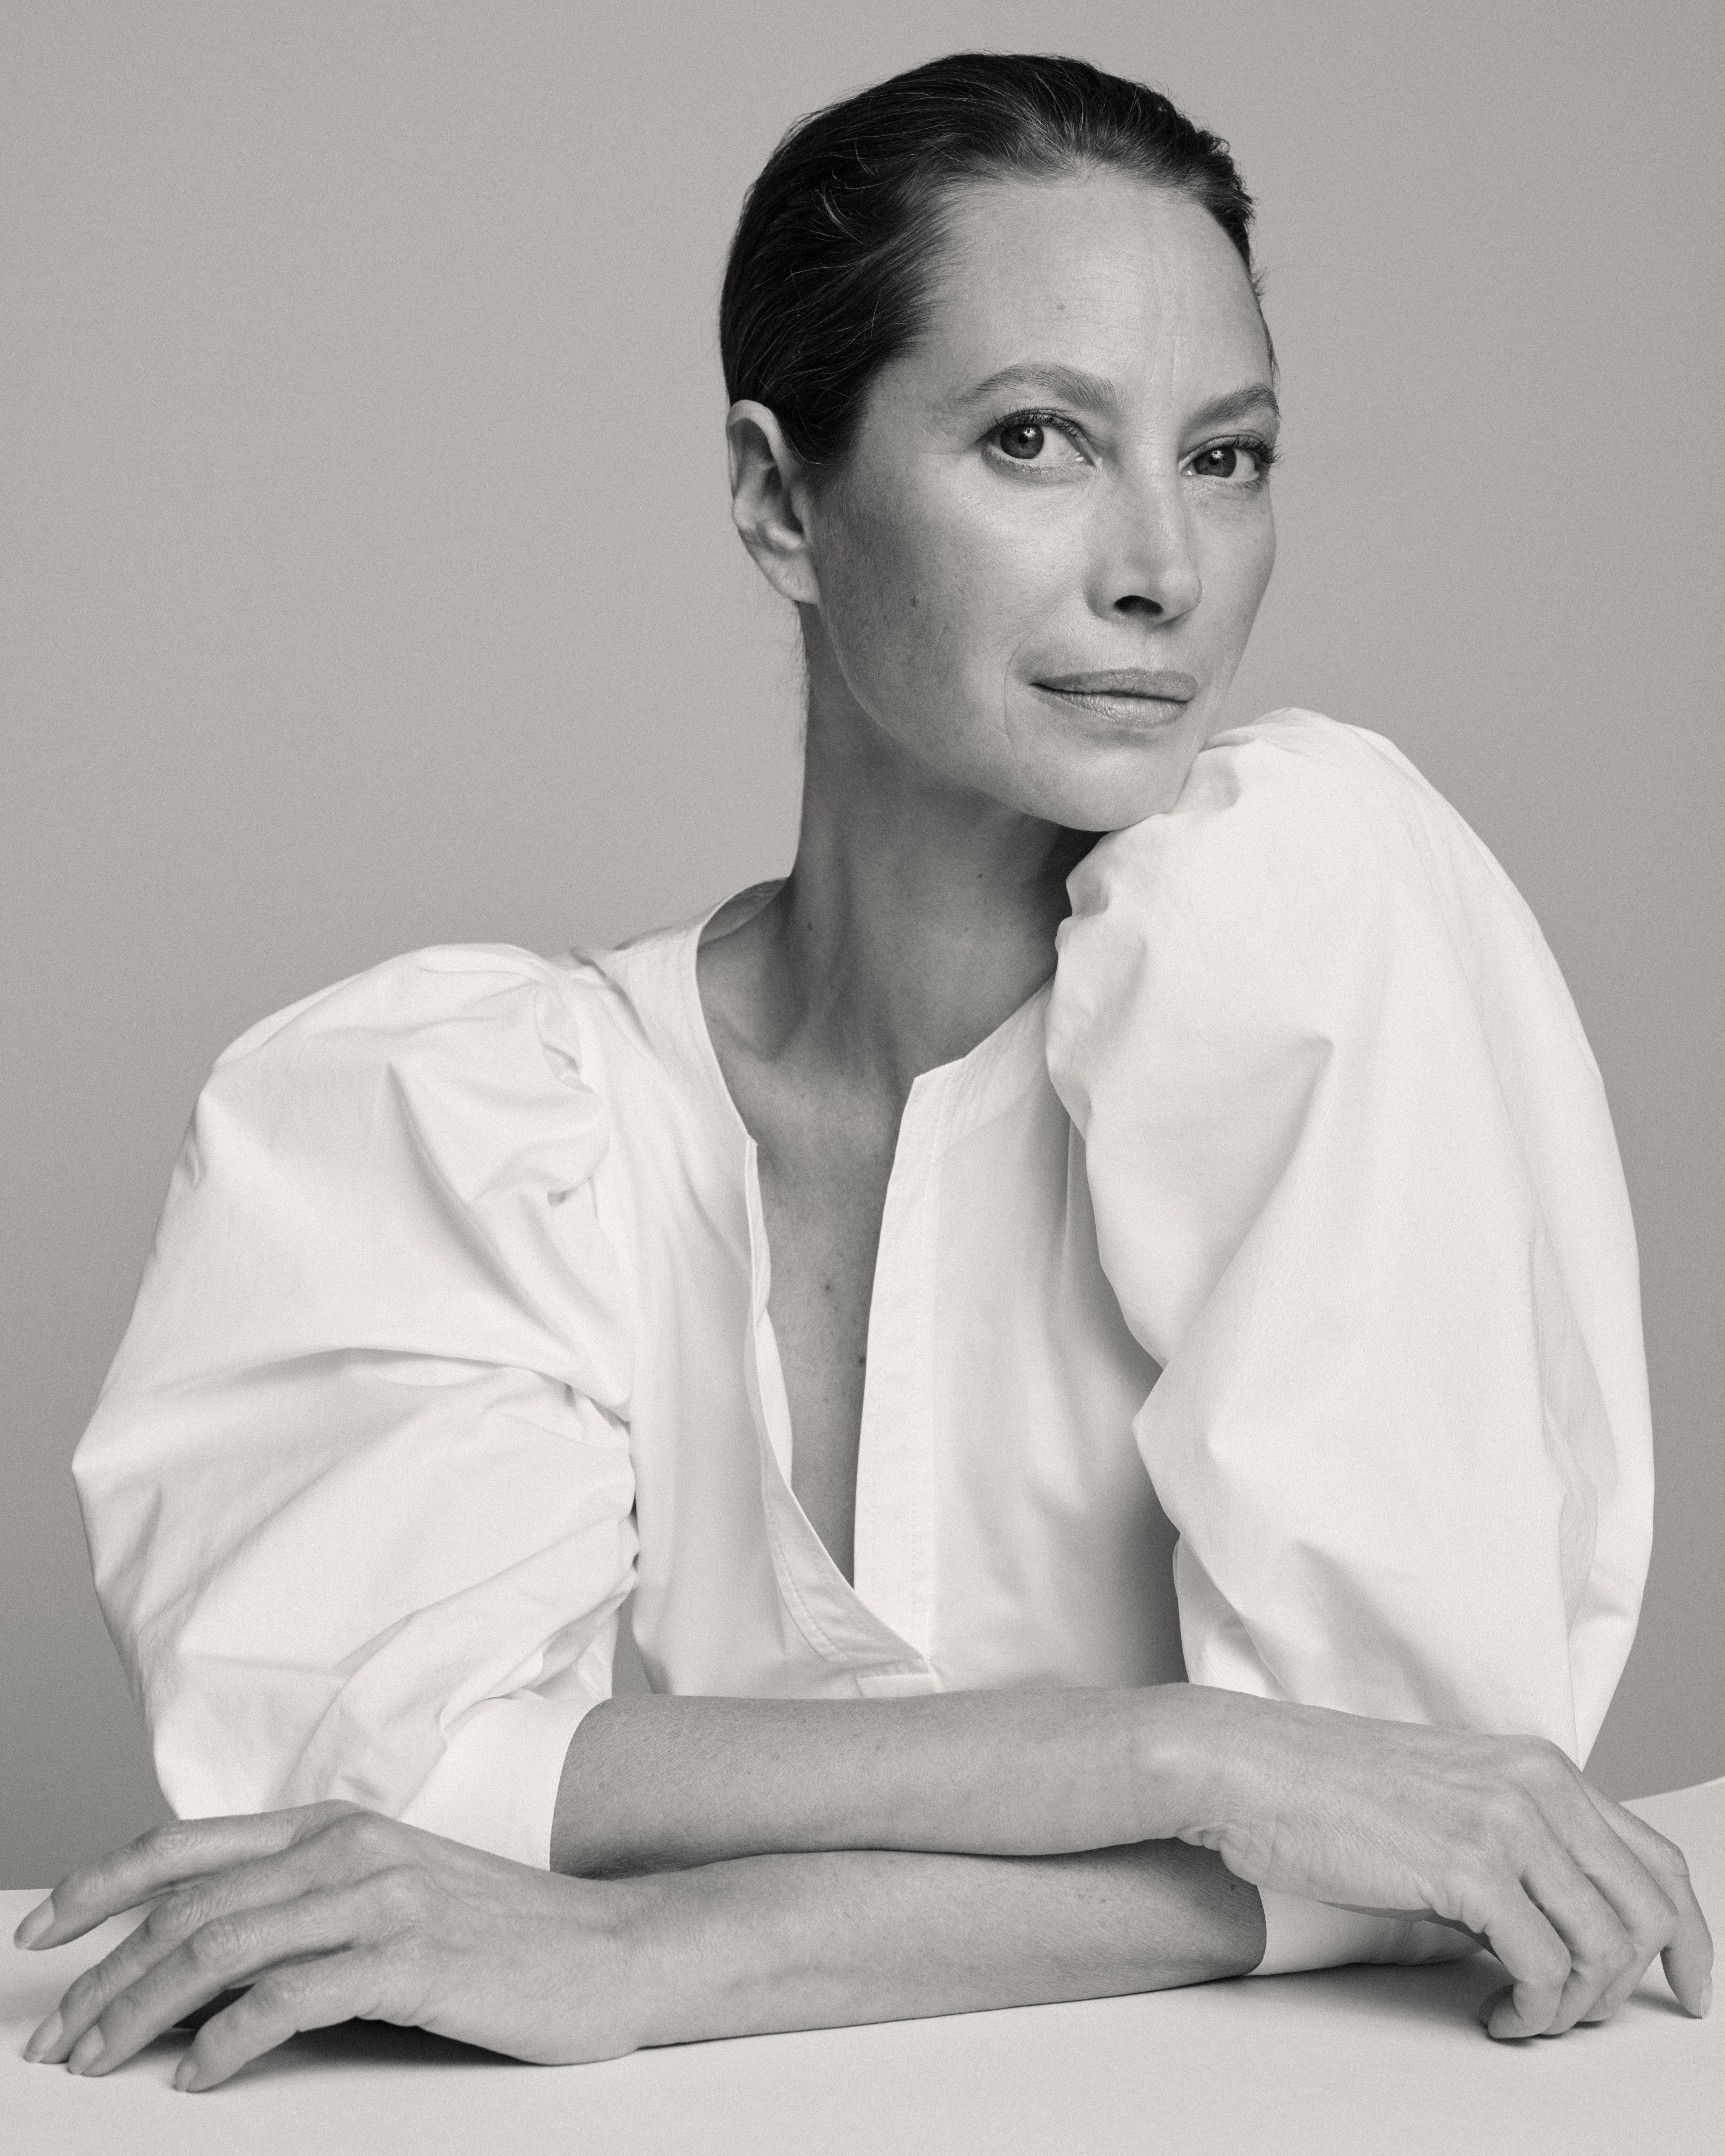 The initiative benefits Every Mother Counts, founded by Christy Turlington Burns, who is also an honoree.